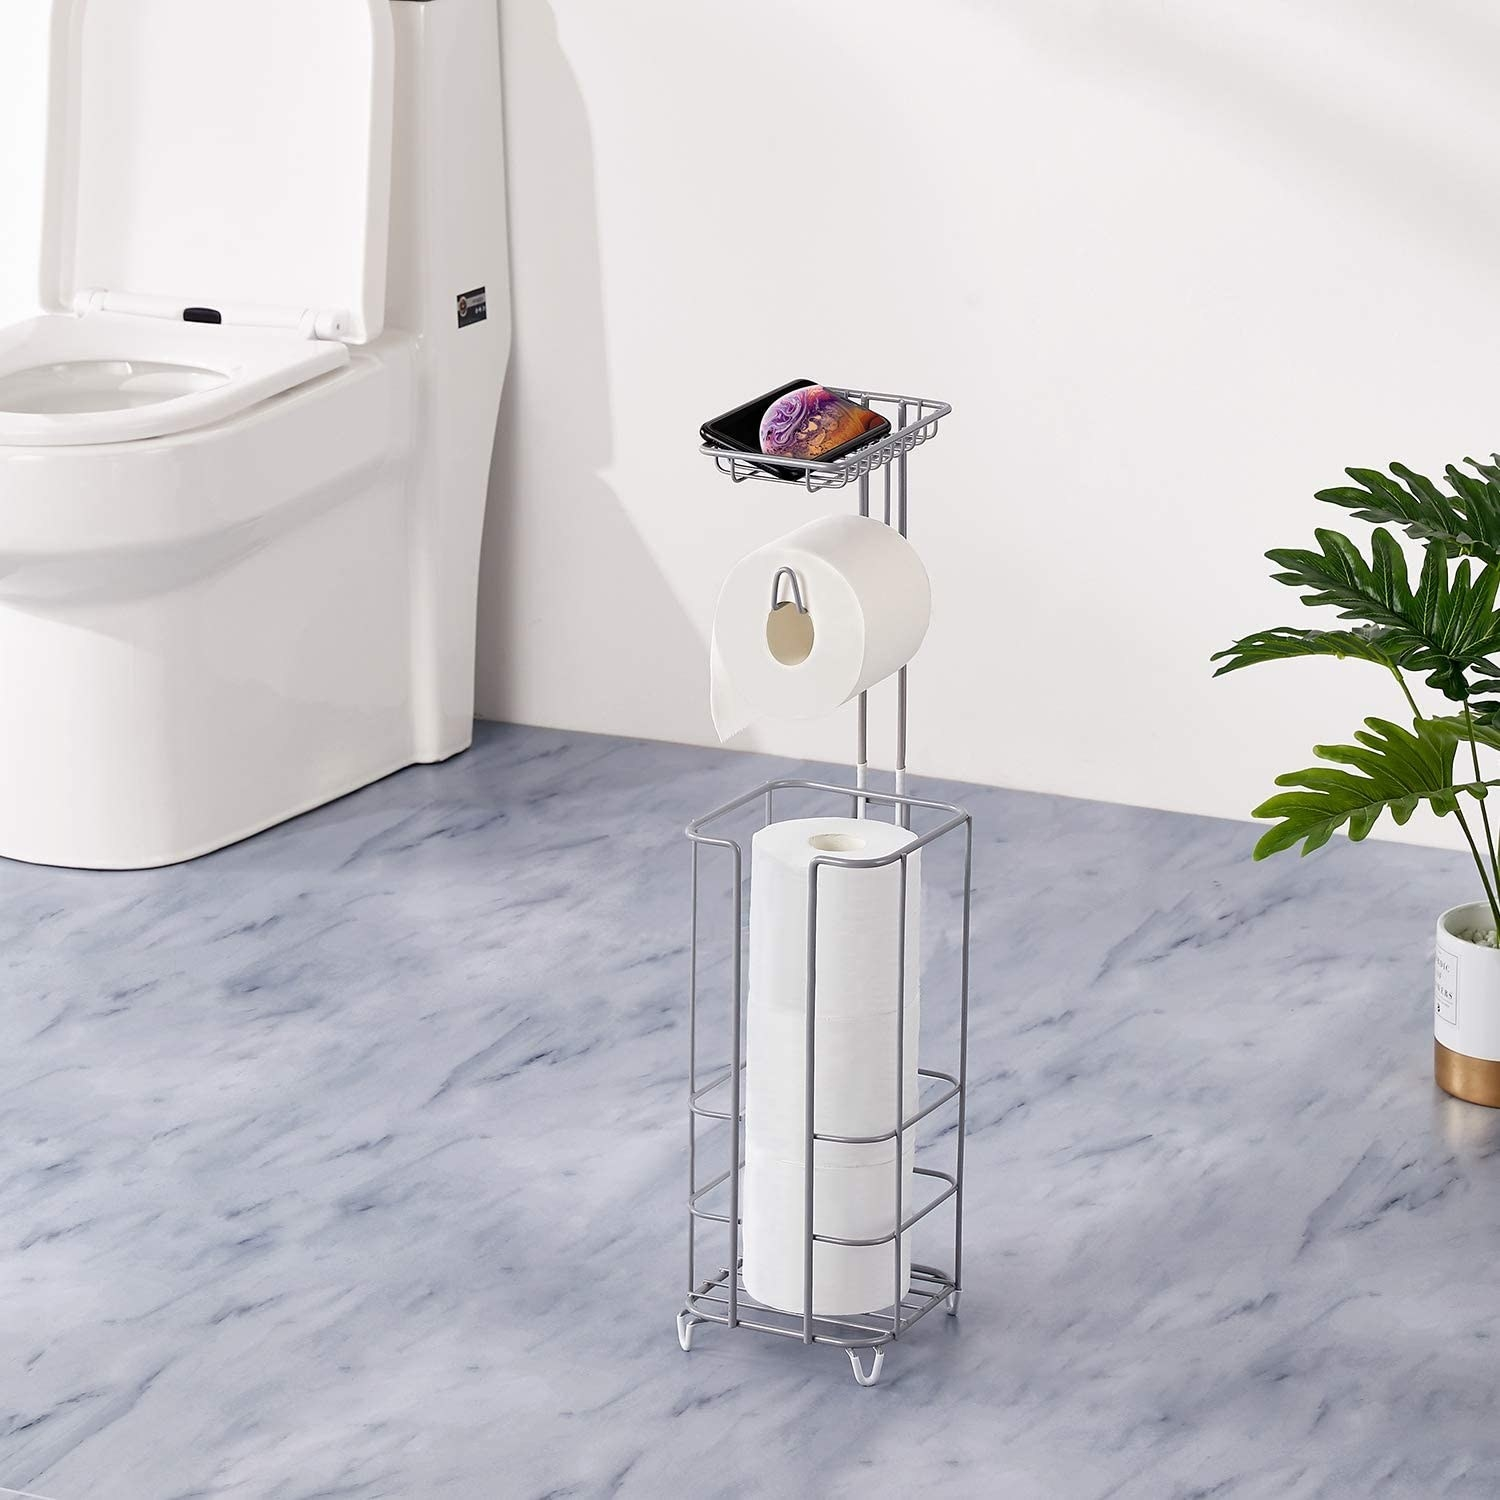 The toilet paper stand between a toilet and a plant